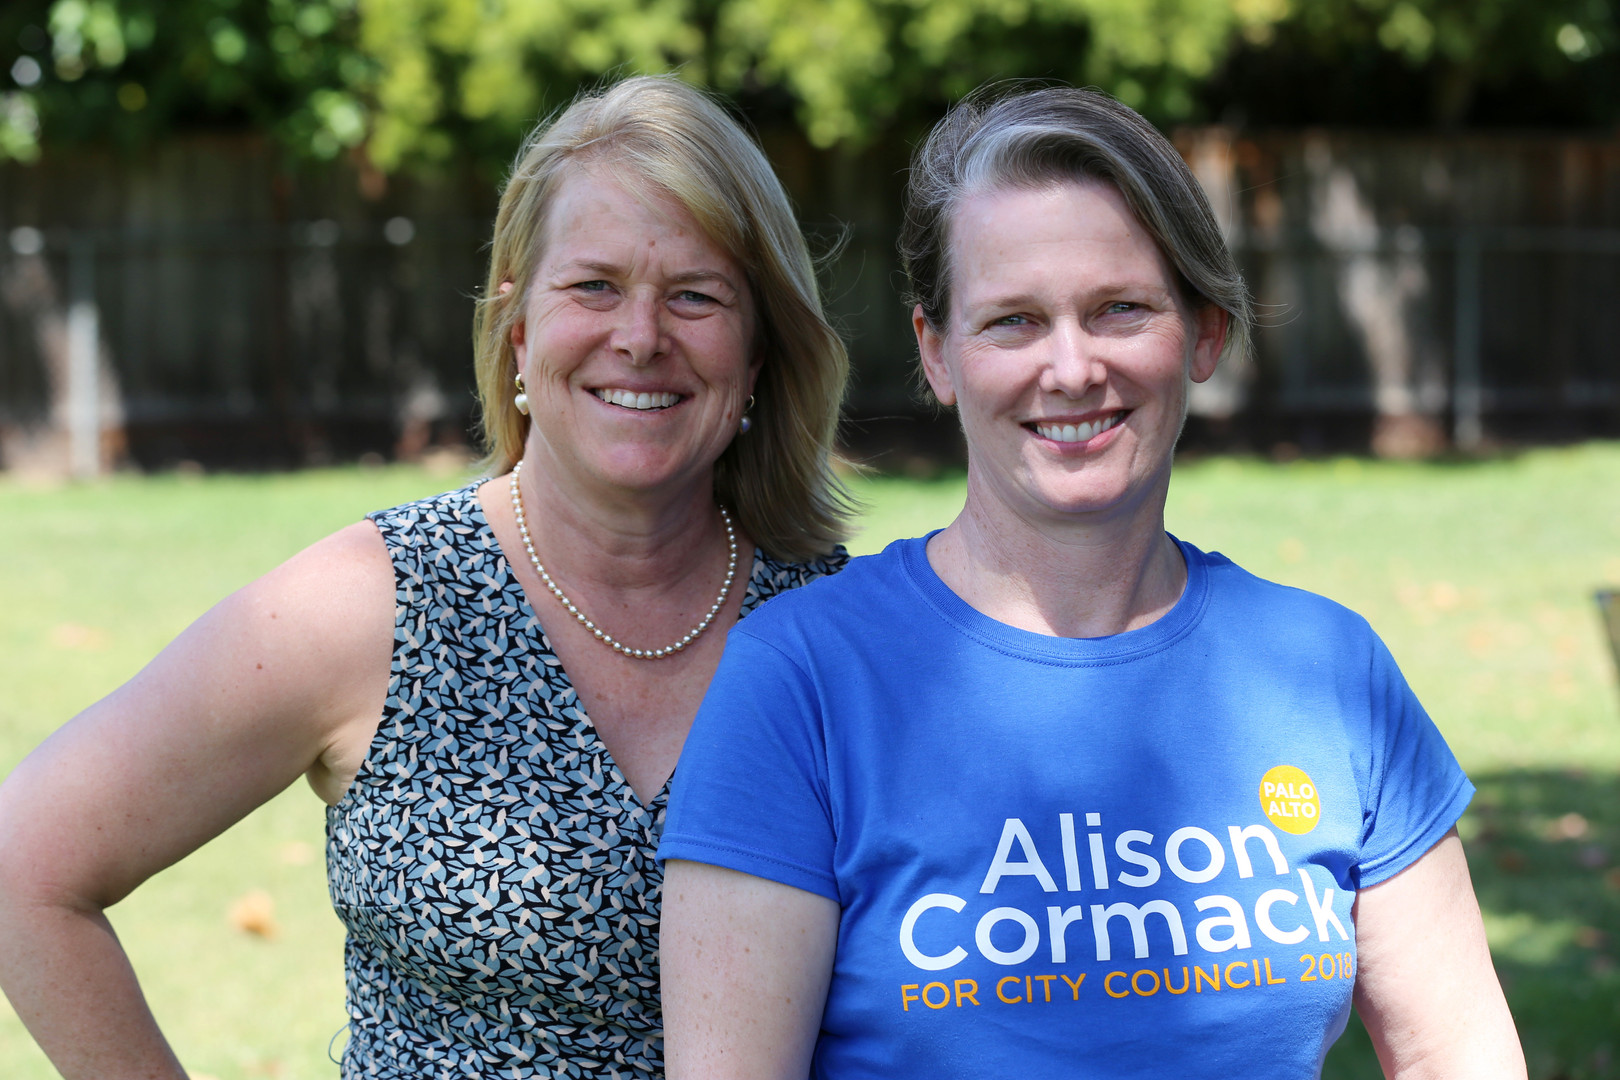 Megan Fogarty and Alison Cormack